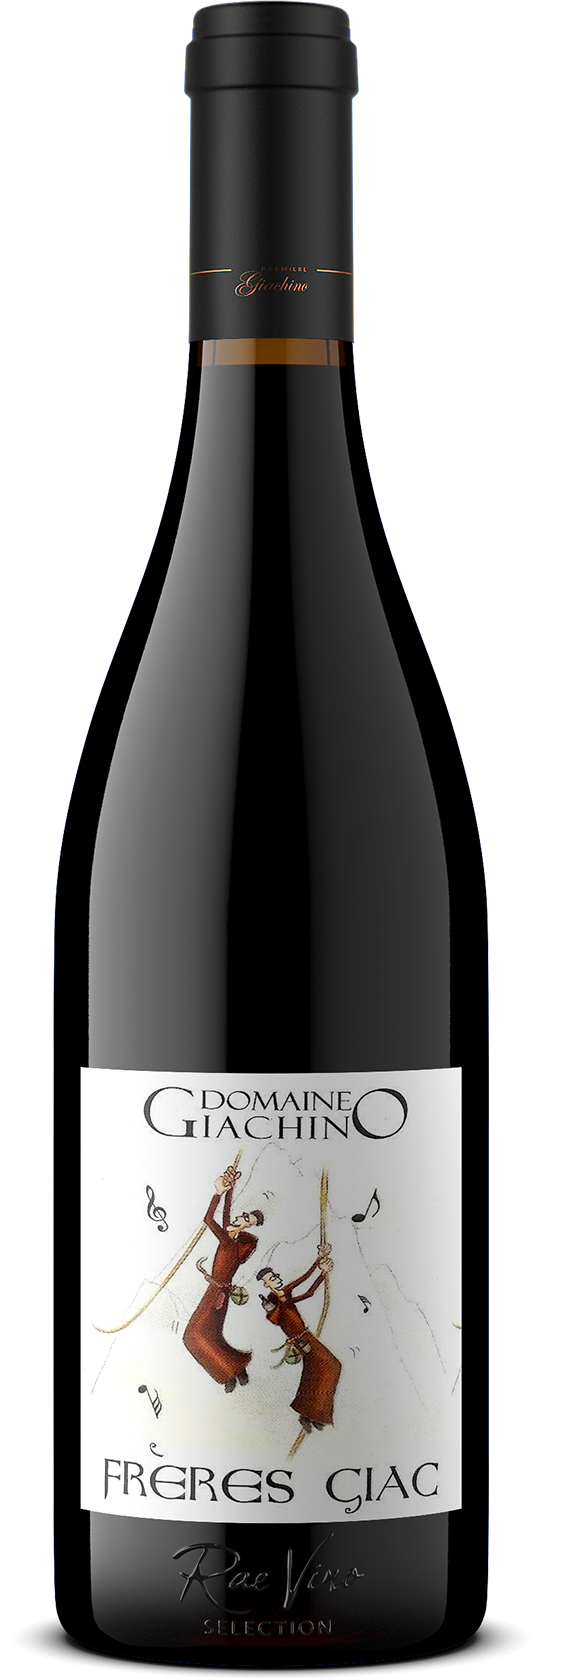 Domaine Giachino : 'Freres Giac' : Red Blend | 2017